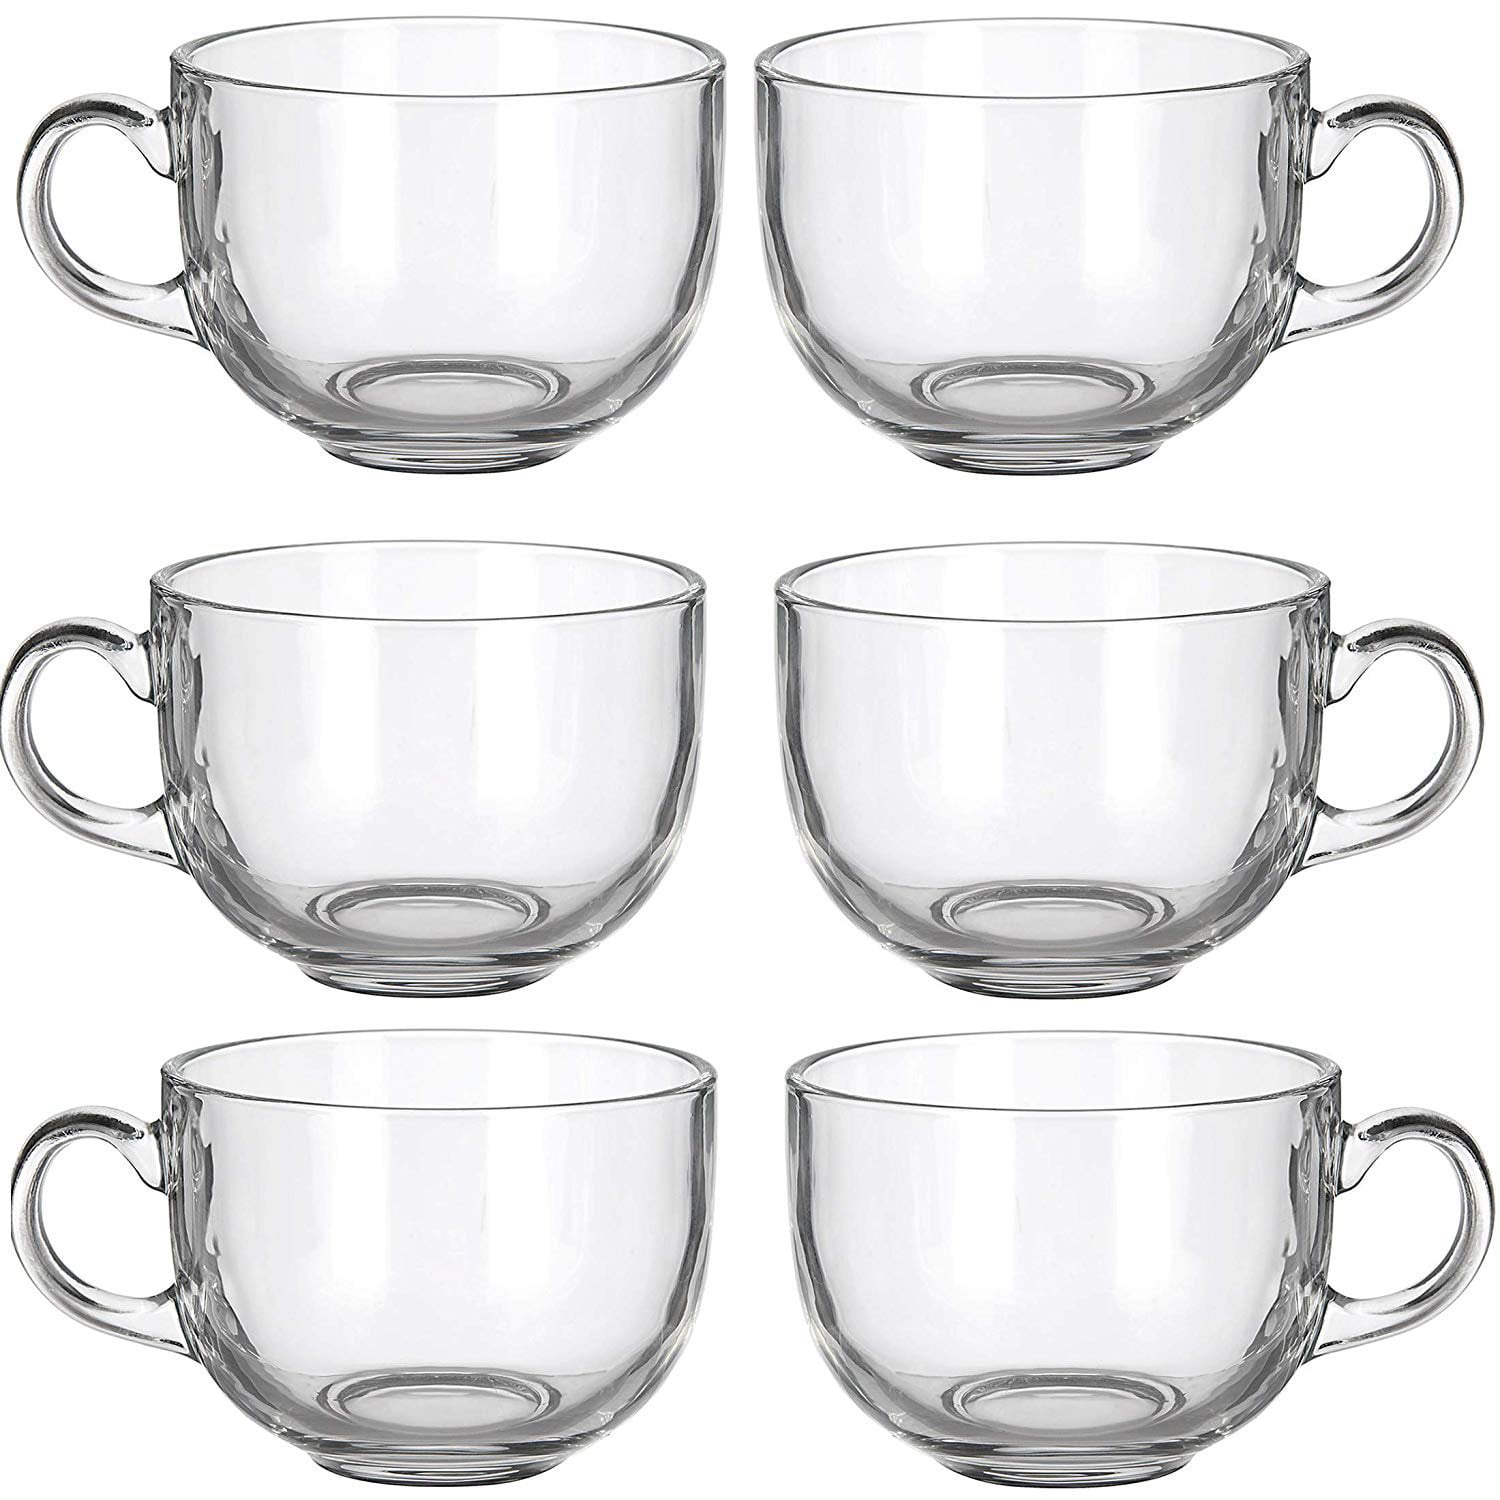 6 Pack Multipurpose Gourmet Coffee Tea Mugs 480 Ml Thick Clear Glass With Handle For Perfect Espresso Cappuccino Or Latte Walmart Com Walmart Com